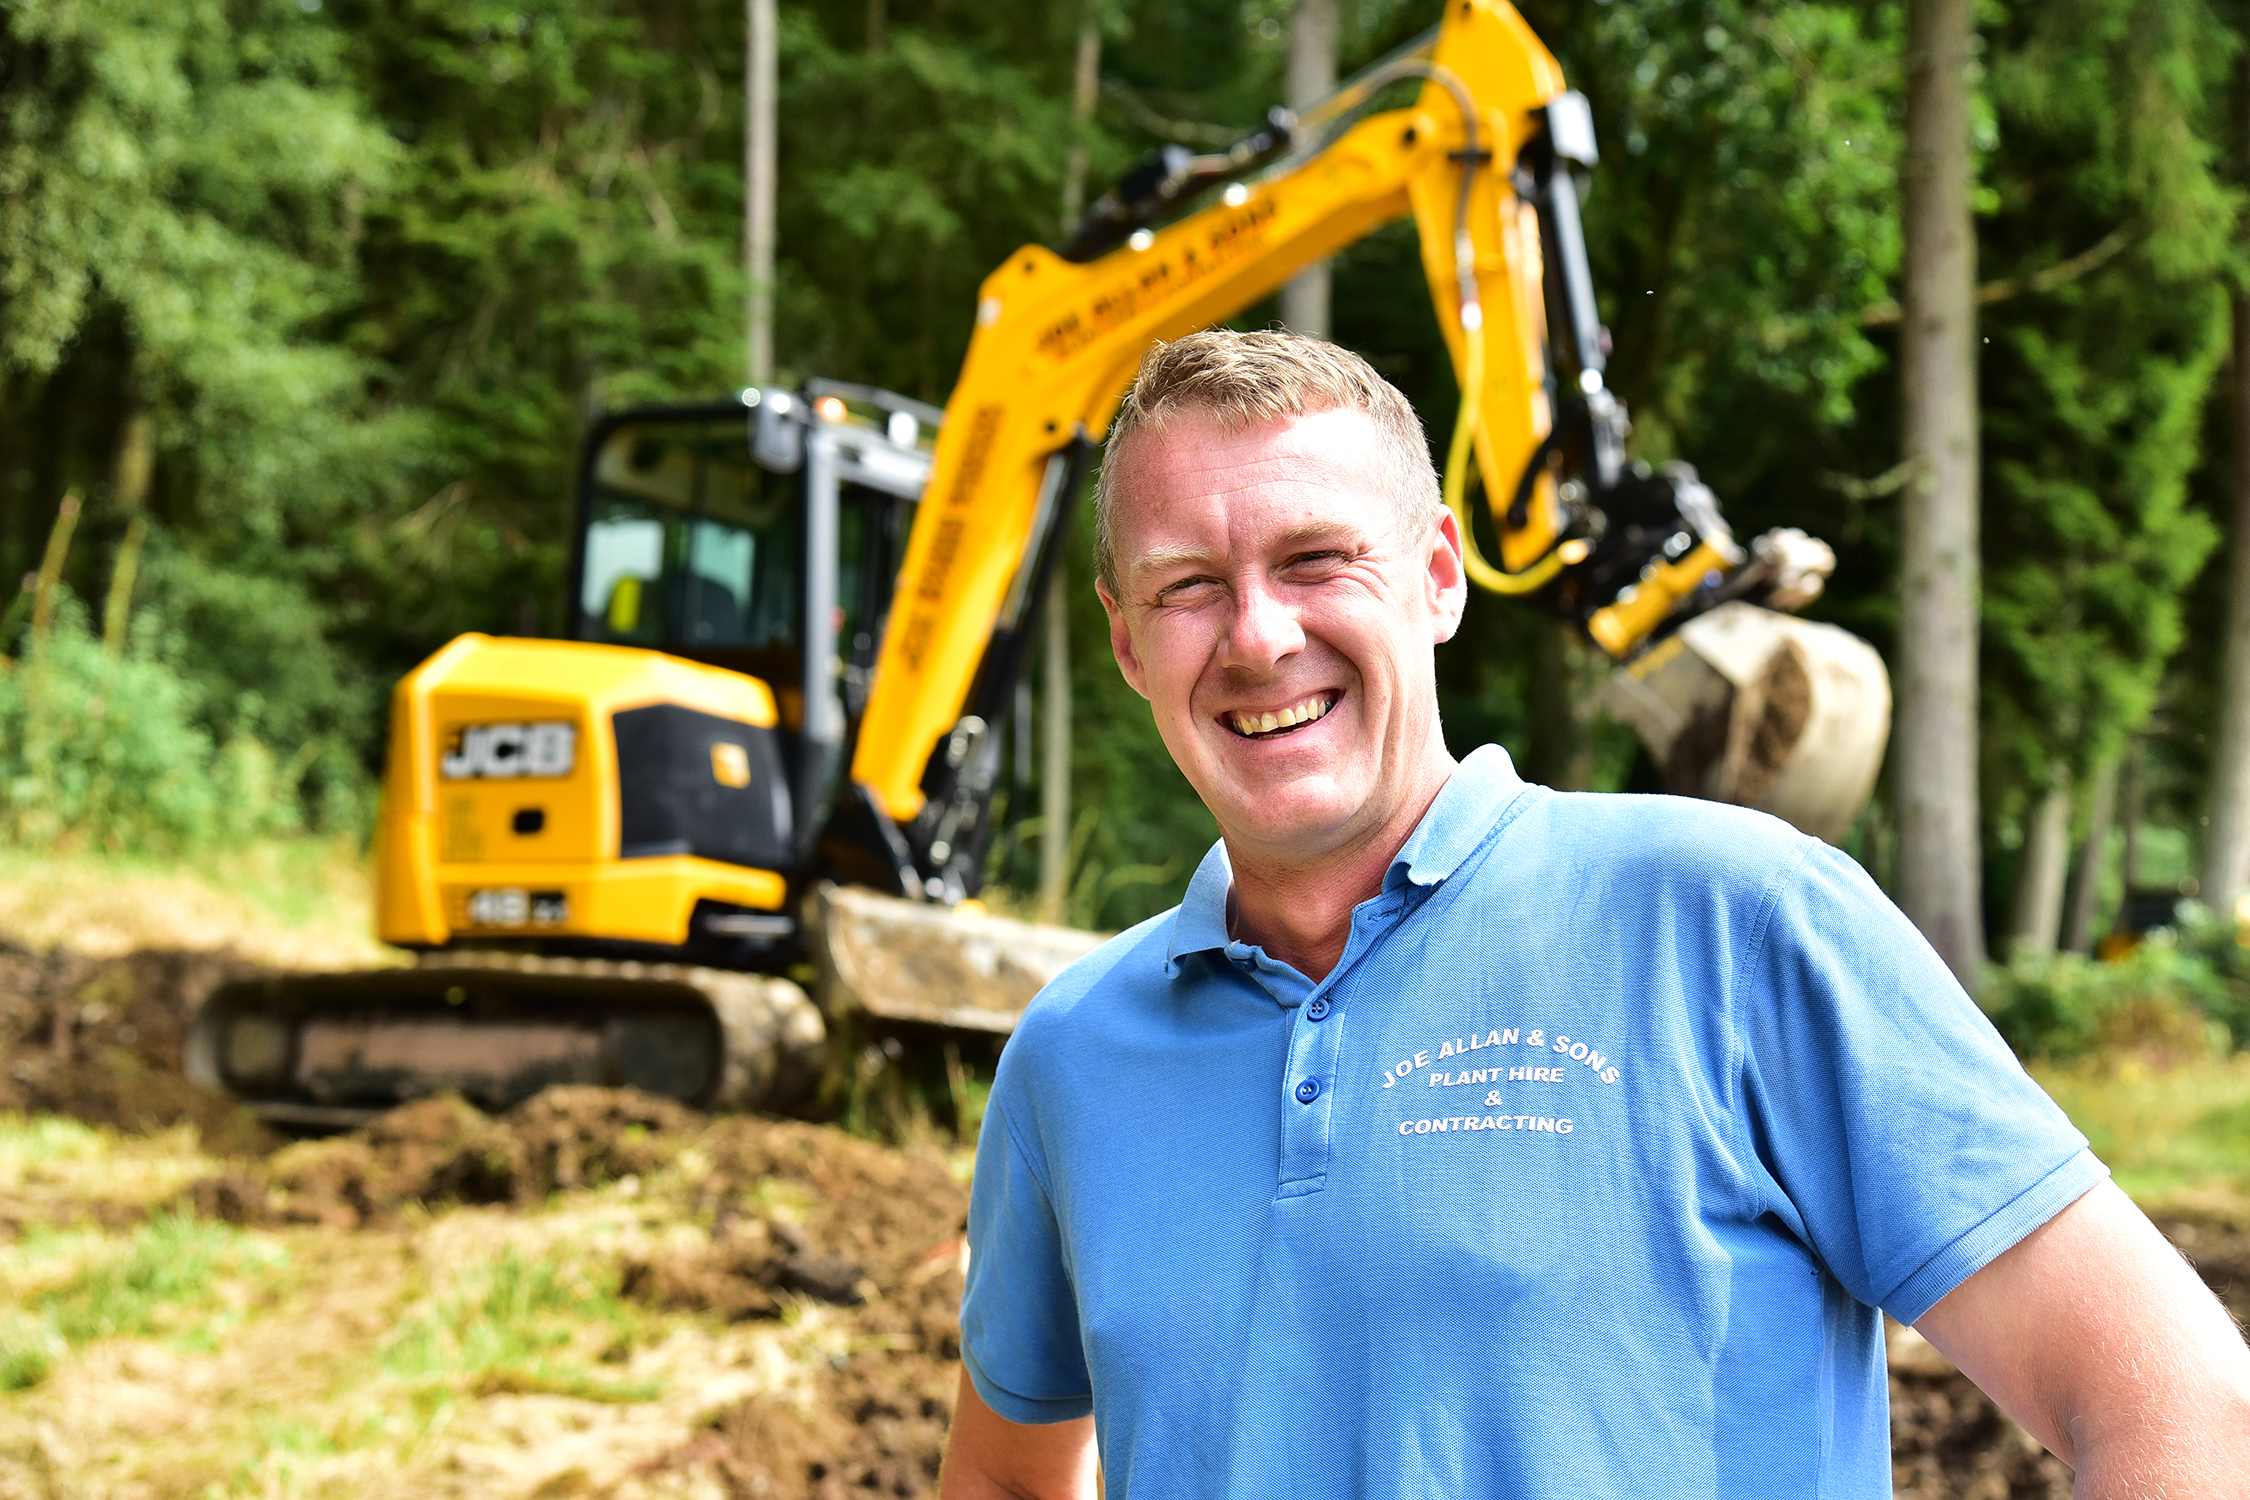 Dave Allan and his JCB 48-Z